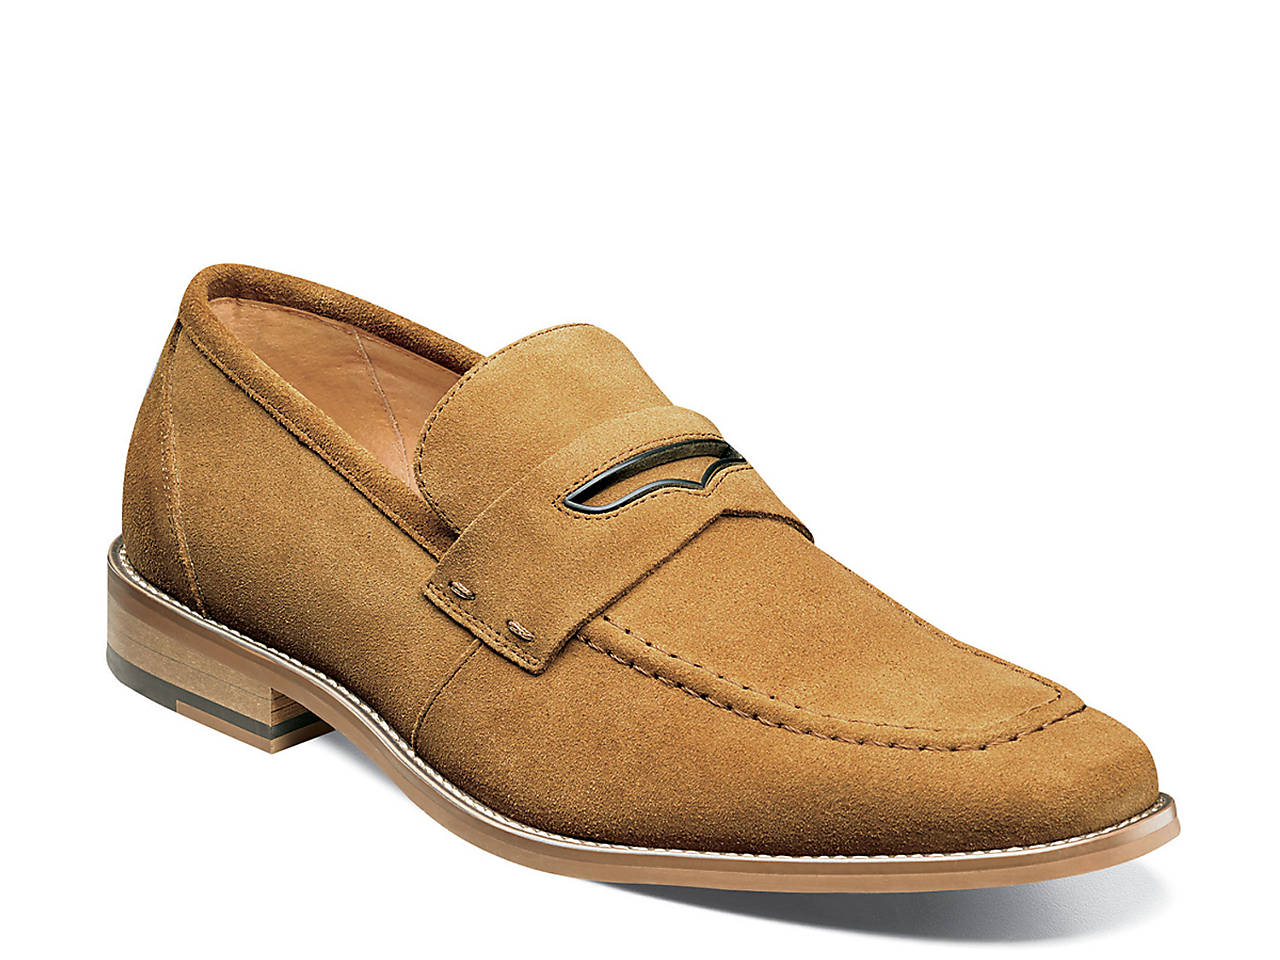 7a2fce90f942a Colfax Penny Loafer